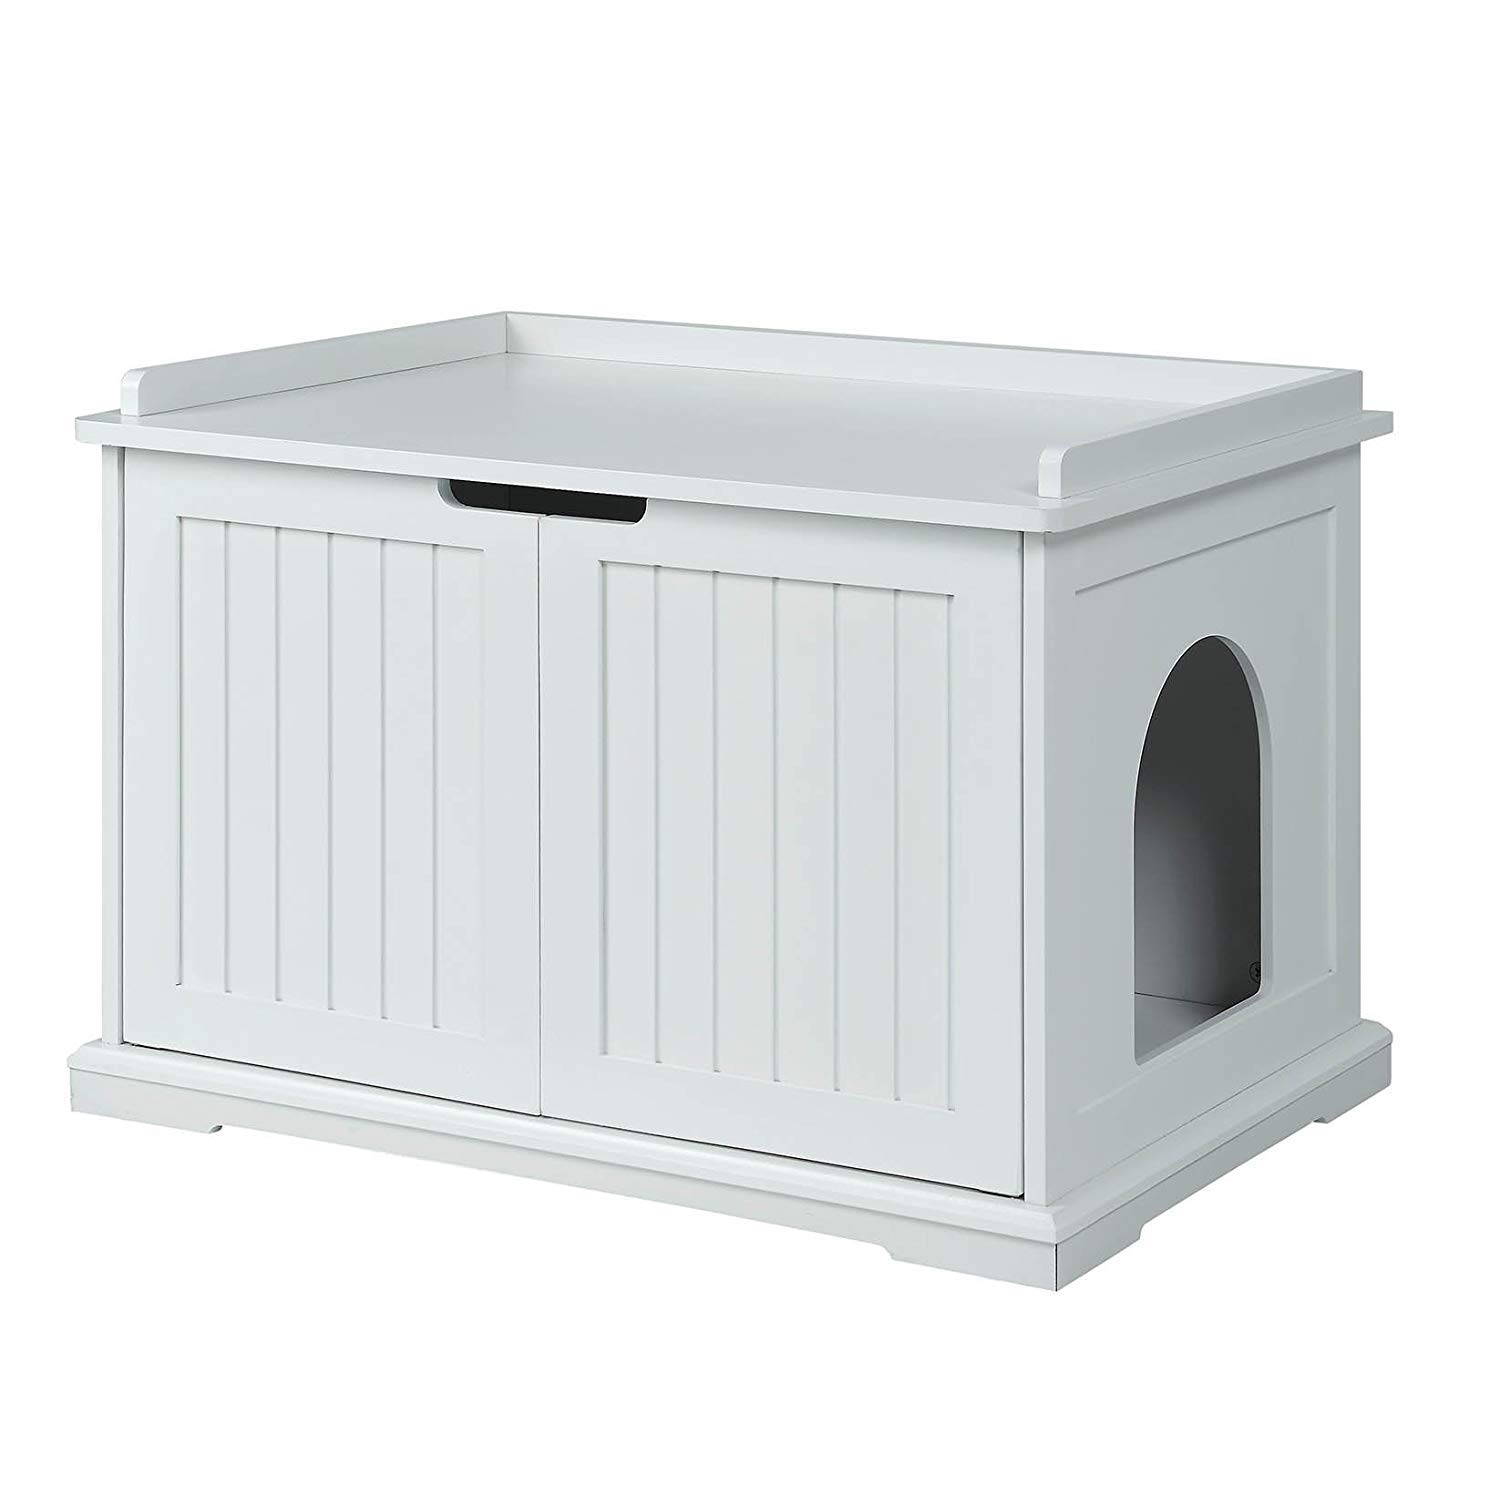 unipaws Designer Cat Washroom Storage Bench, Litter Box Cover, Sturdy Wooden Structure, Spacious Storage, Easy Assembly, Fit Most of Litter Box, White by unipaws